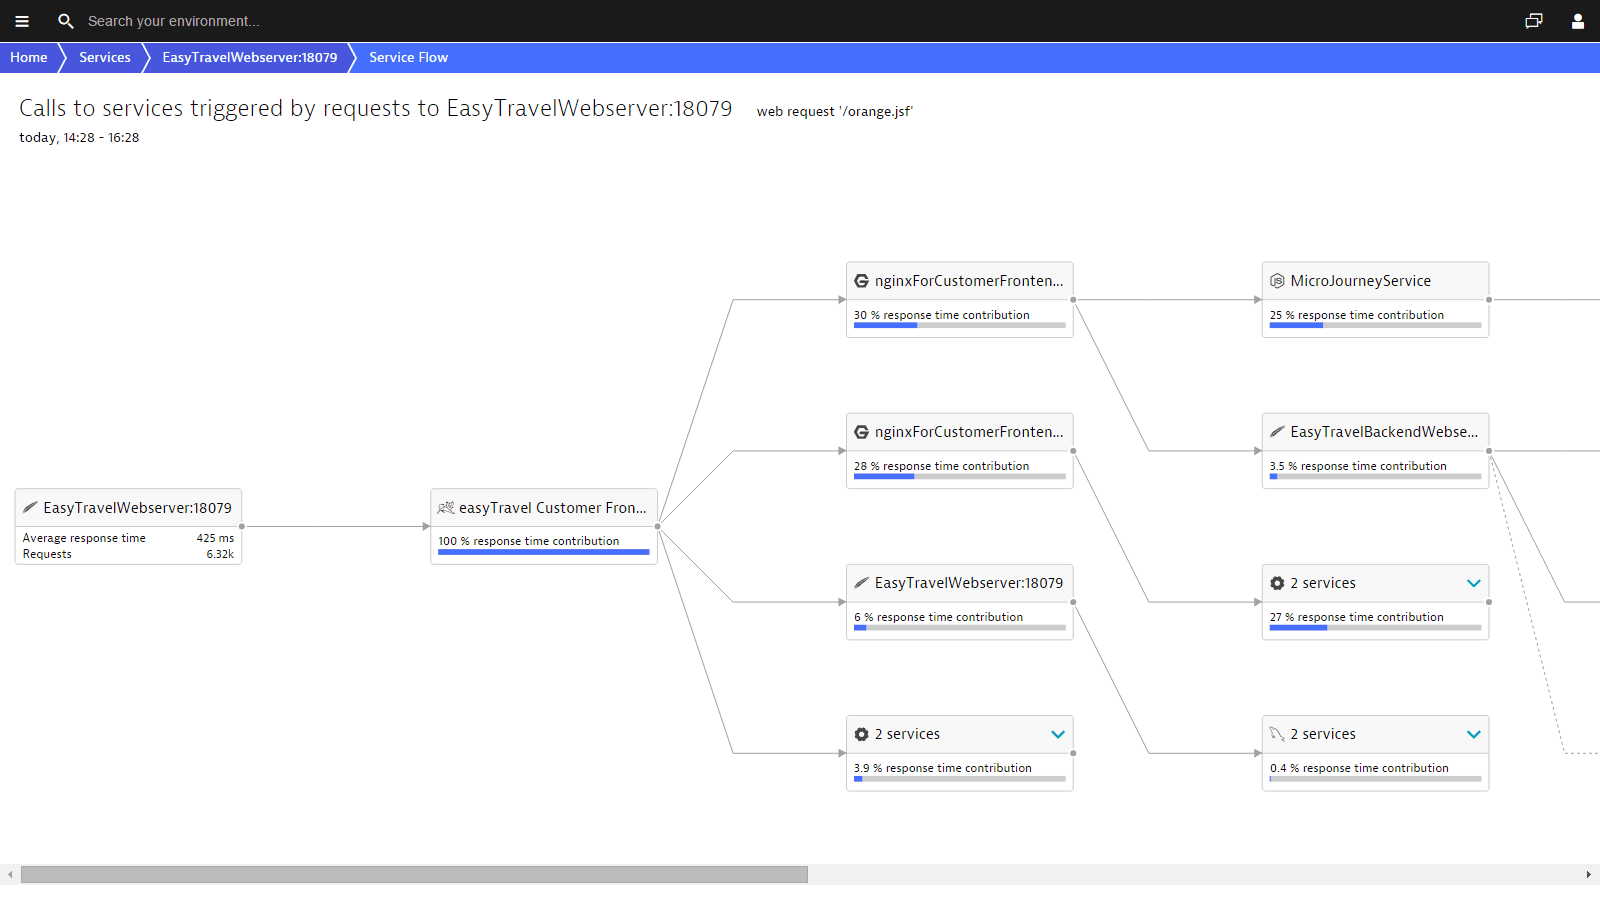 Dynatrace service flow visualizes TomEE service requests end-to-end.